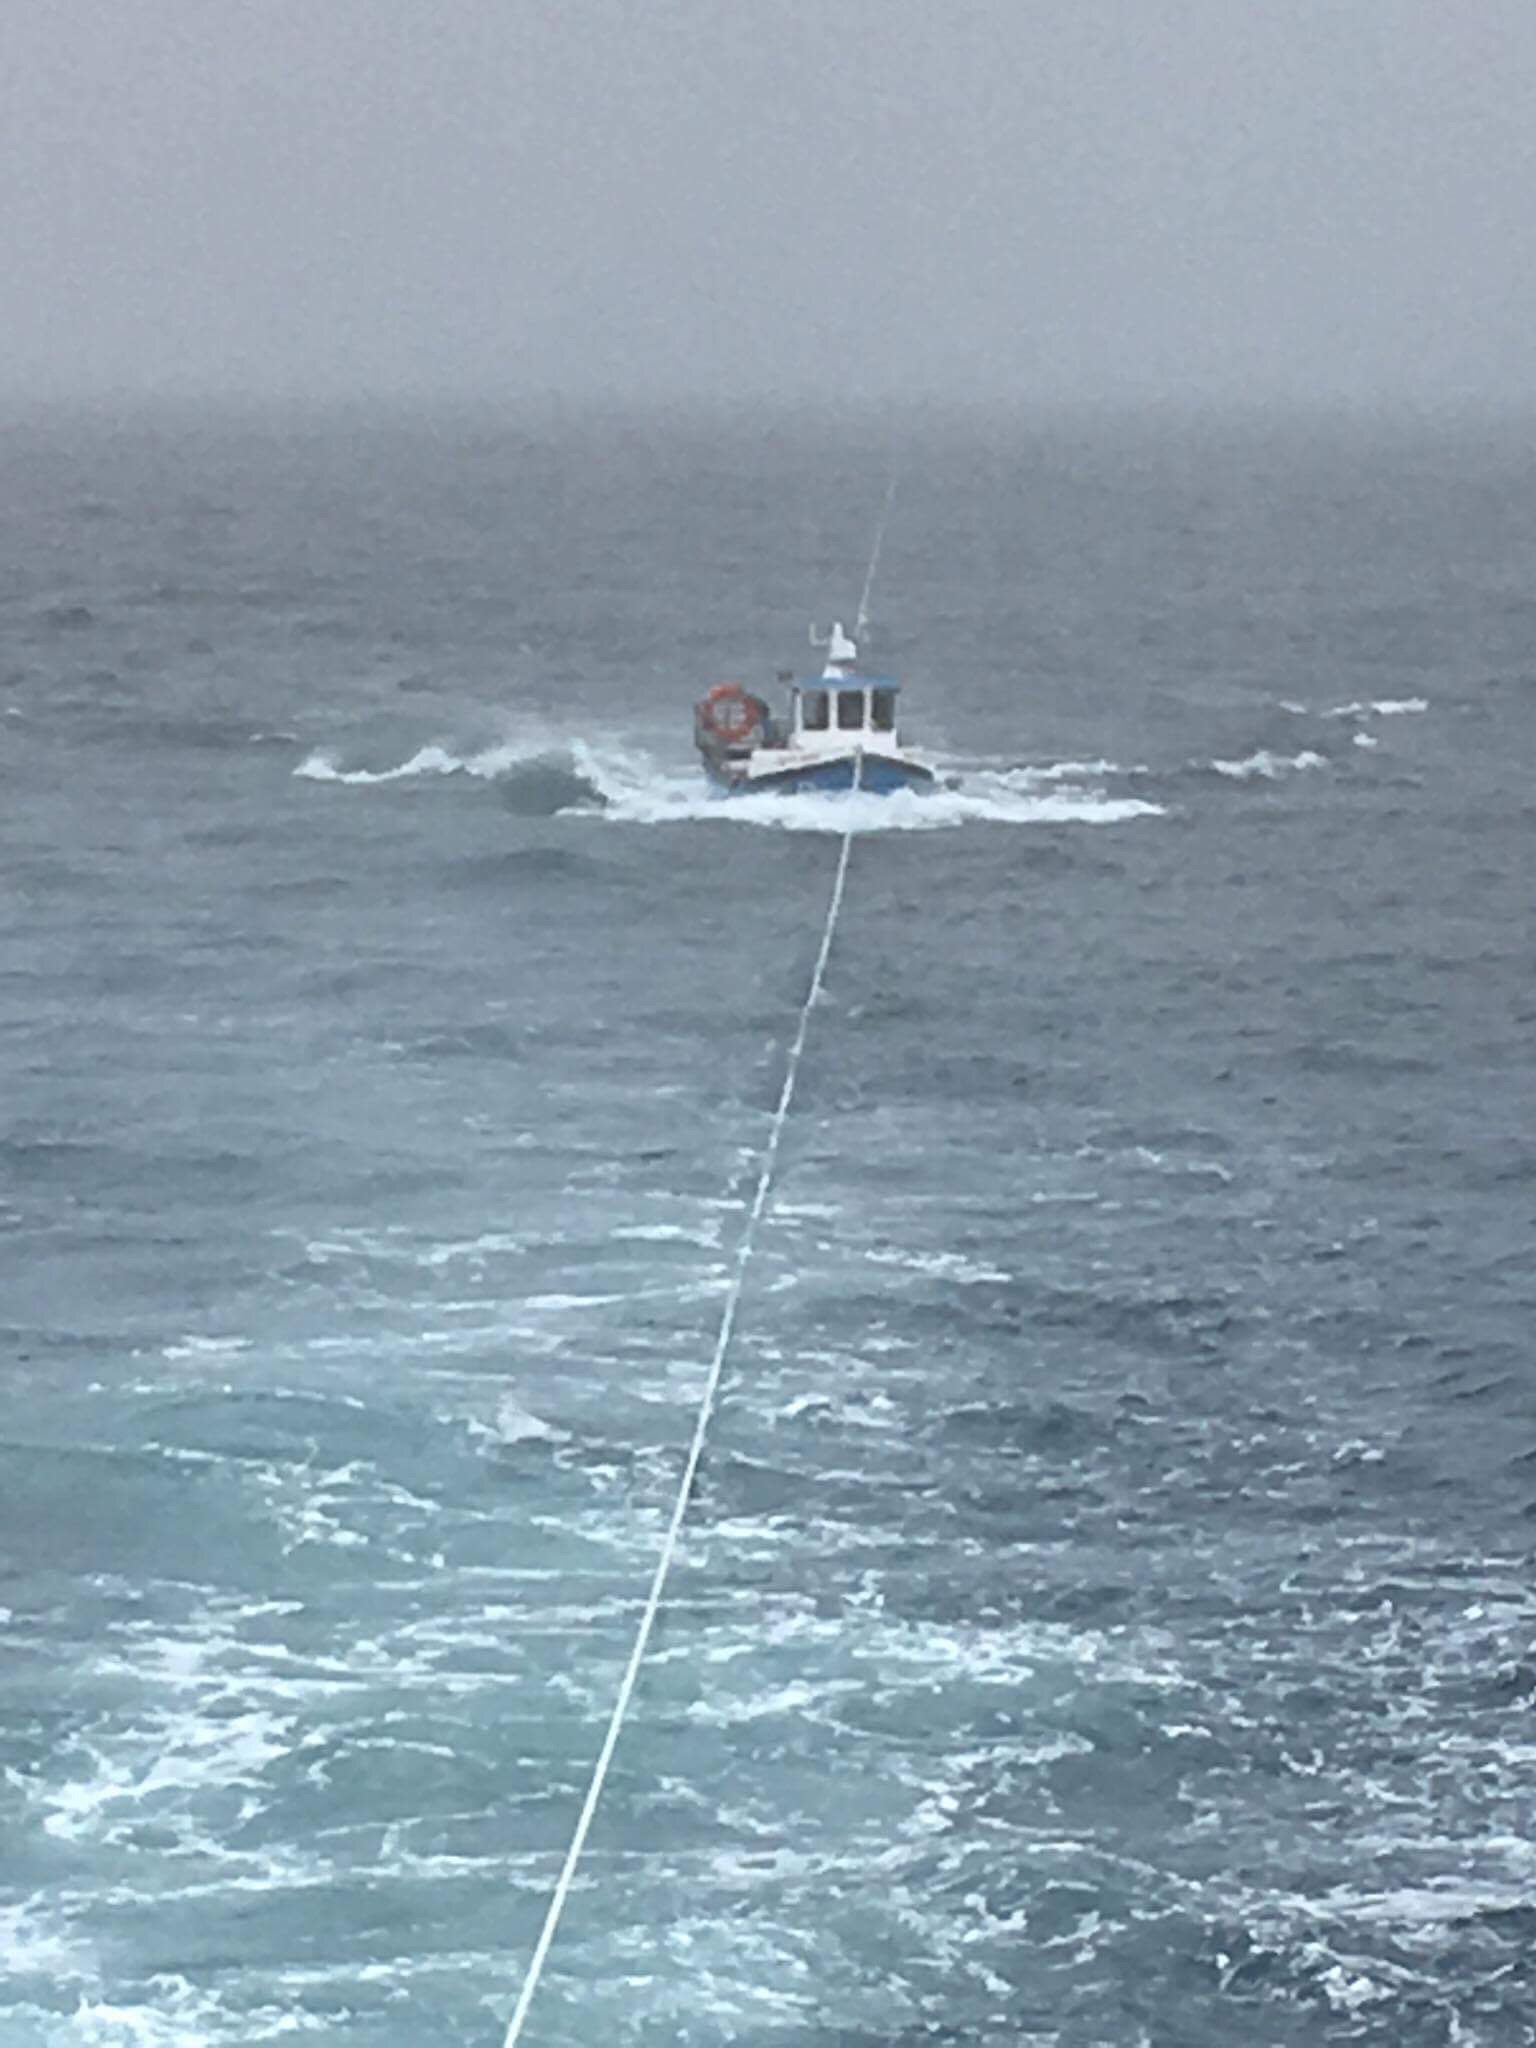 Fishing boat under tow